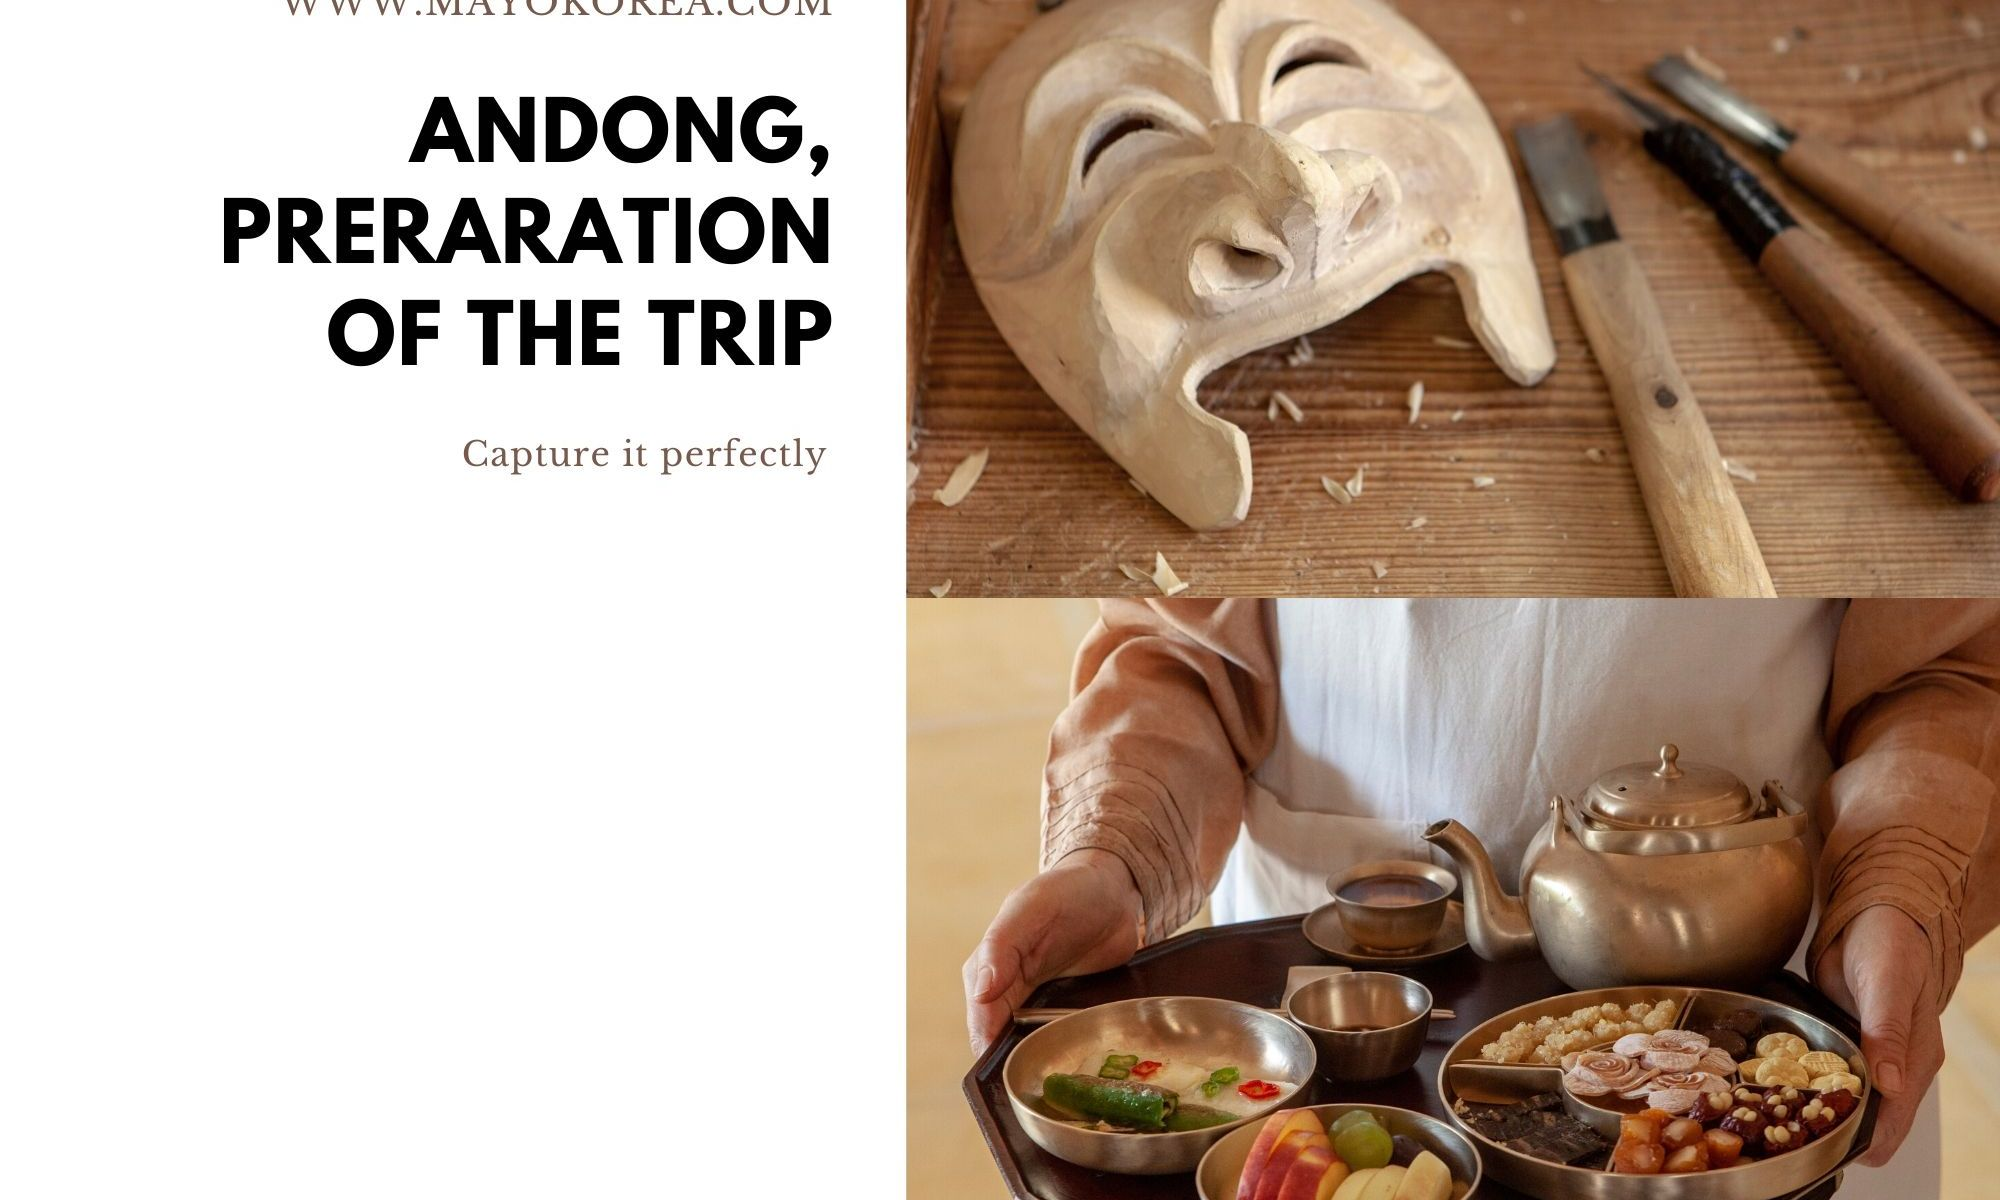 Andong, Preparation of the trip